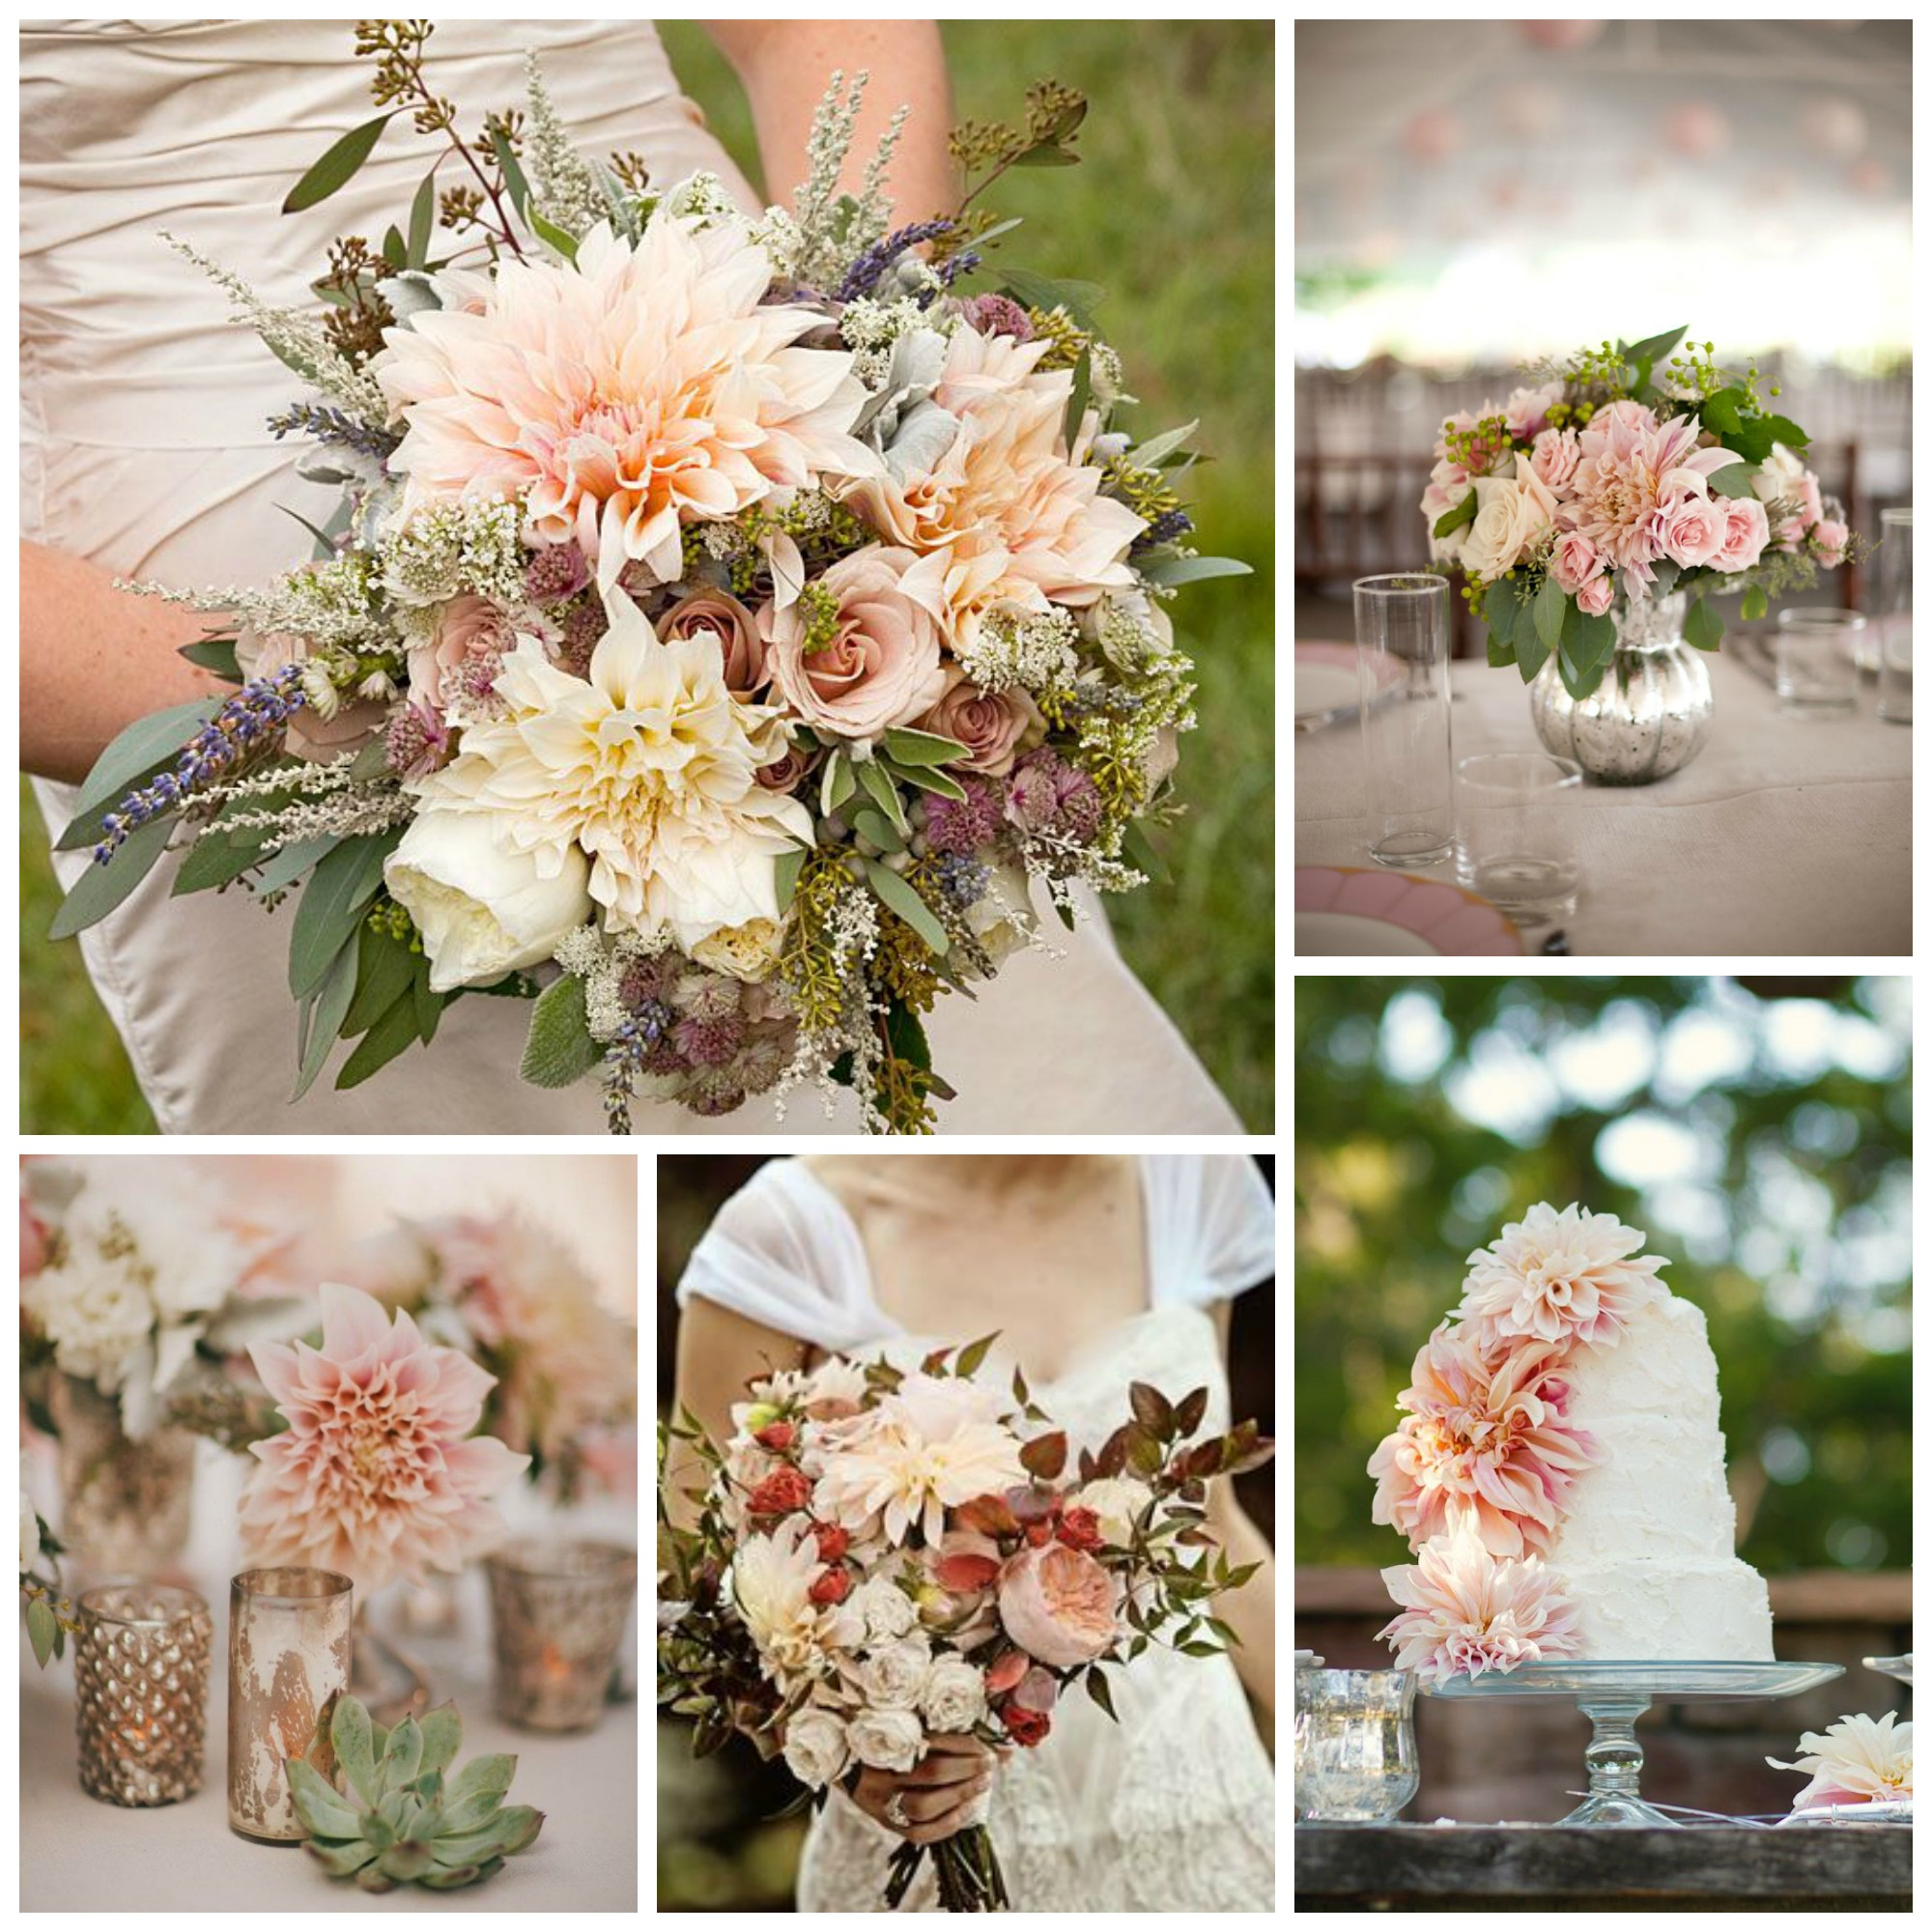 dahlias in muted colors for romantic wedding flowers